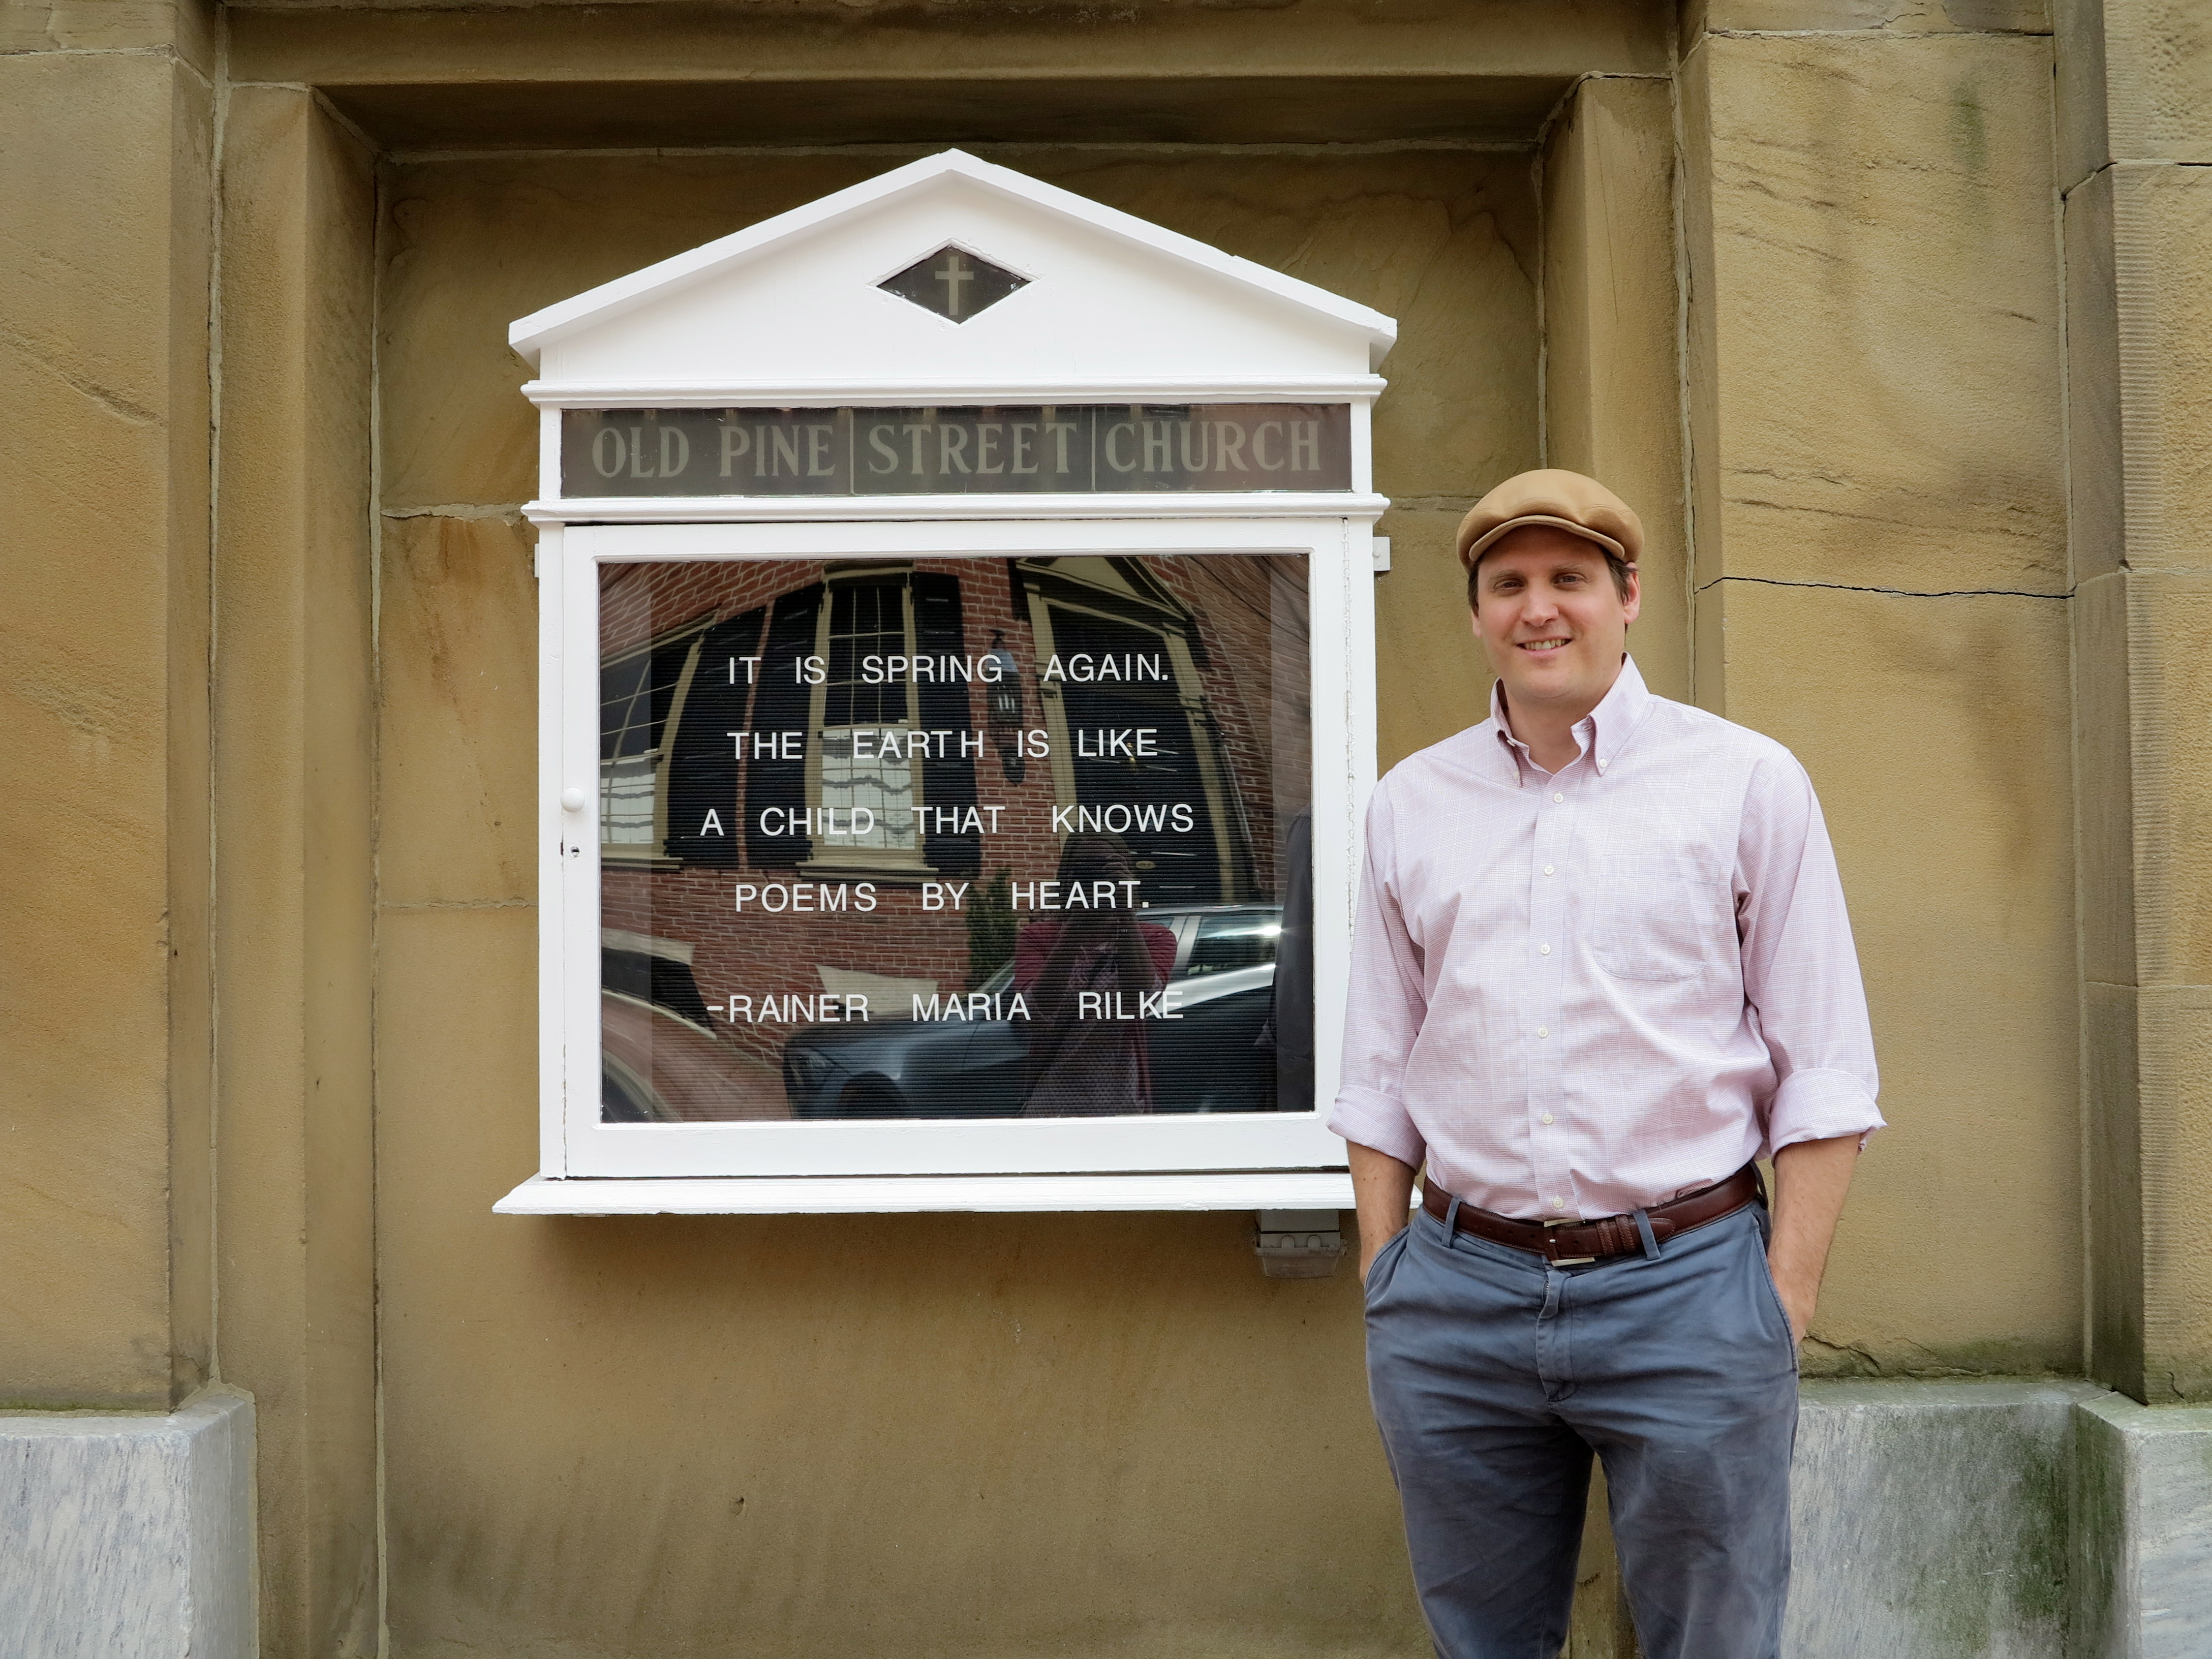 Rev. Jason Ferris and the Old Pine Street Church signboard